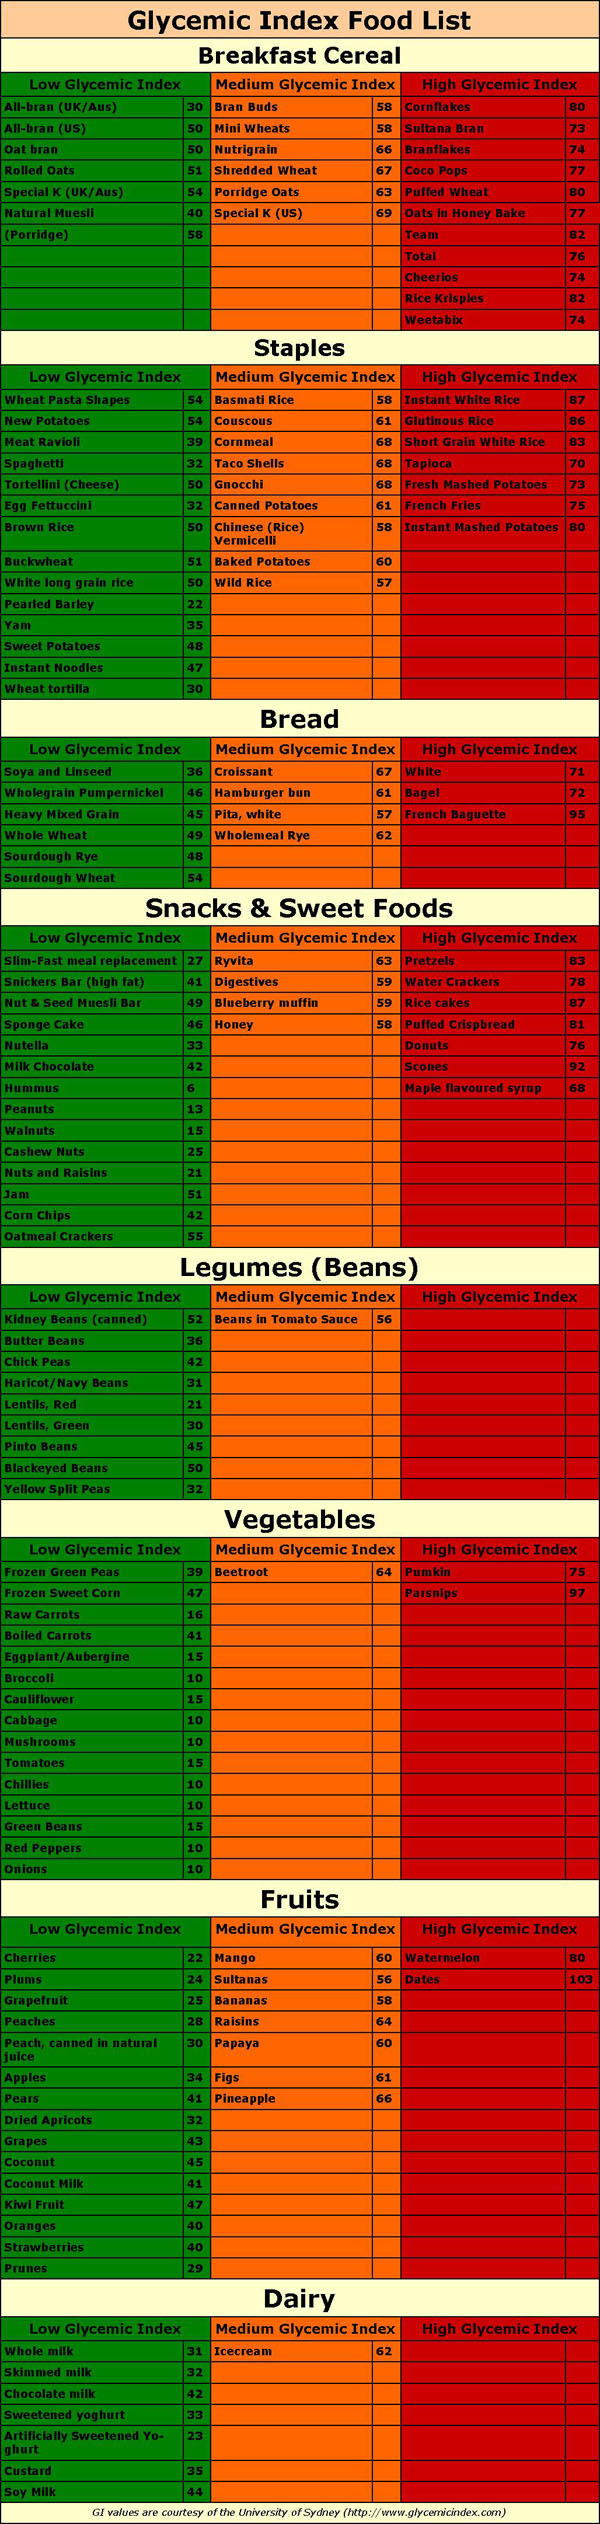 Low Glycemic Index Food List Chart